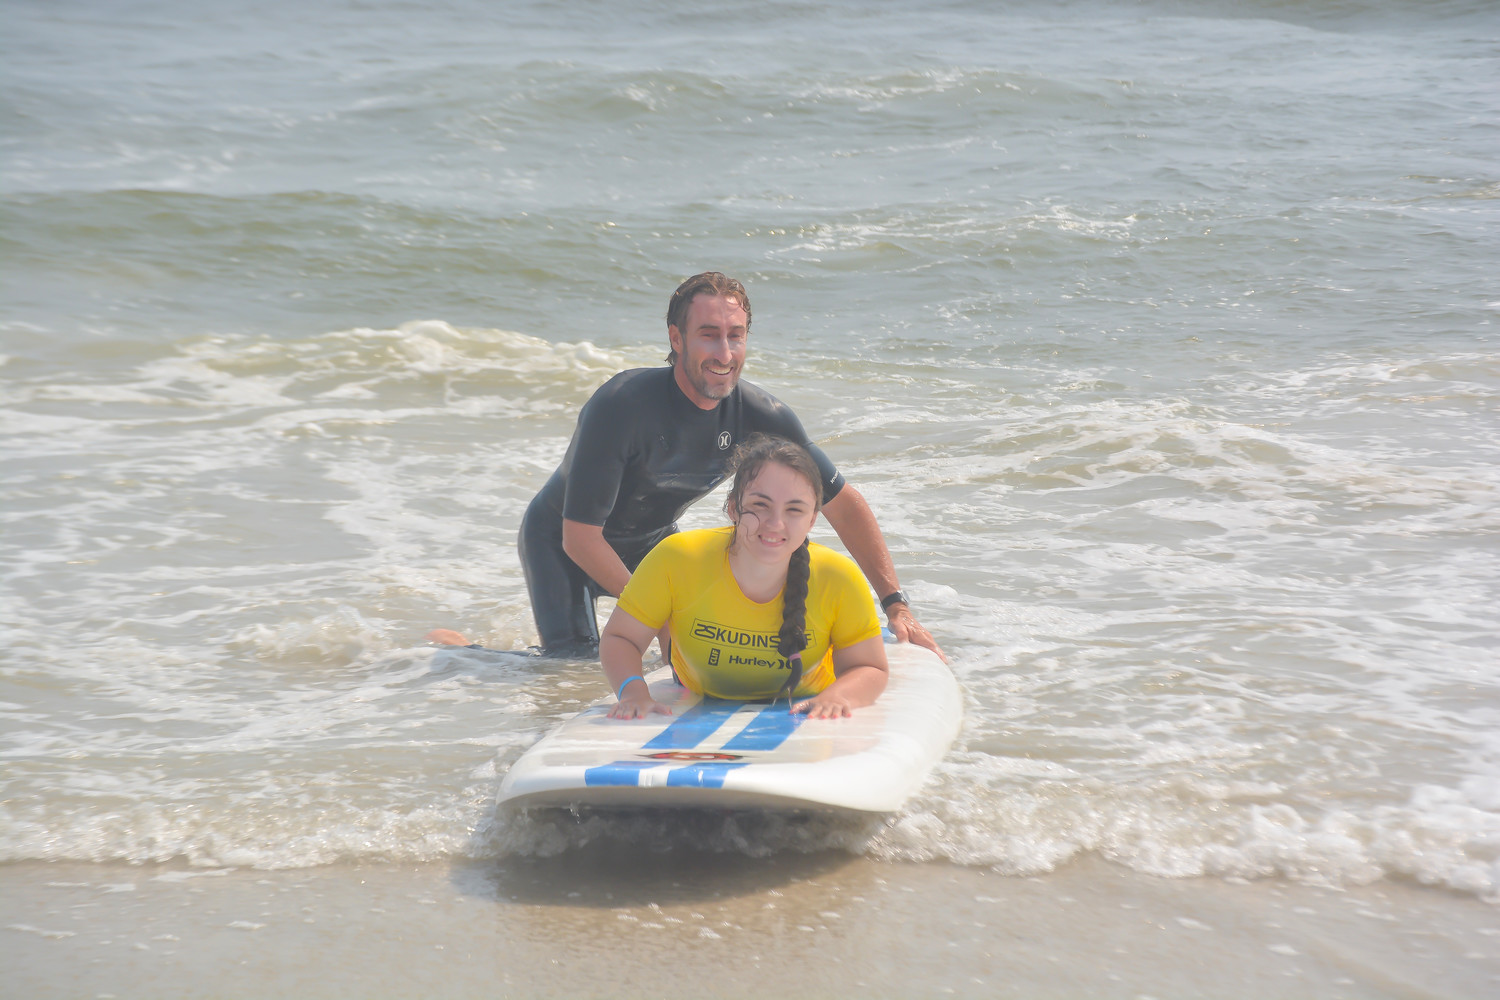 Sidorela Lleshi said she had a wonderful time surfing with the help of Skudin Surf instructor Adam Dufner during a trip to Long Beach sponsored by the Adaptive Sports Academy at the Hospital for Special Surgery on Aug. 15.